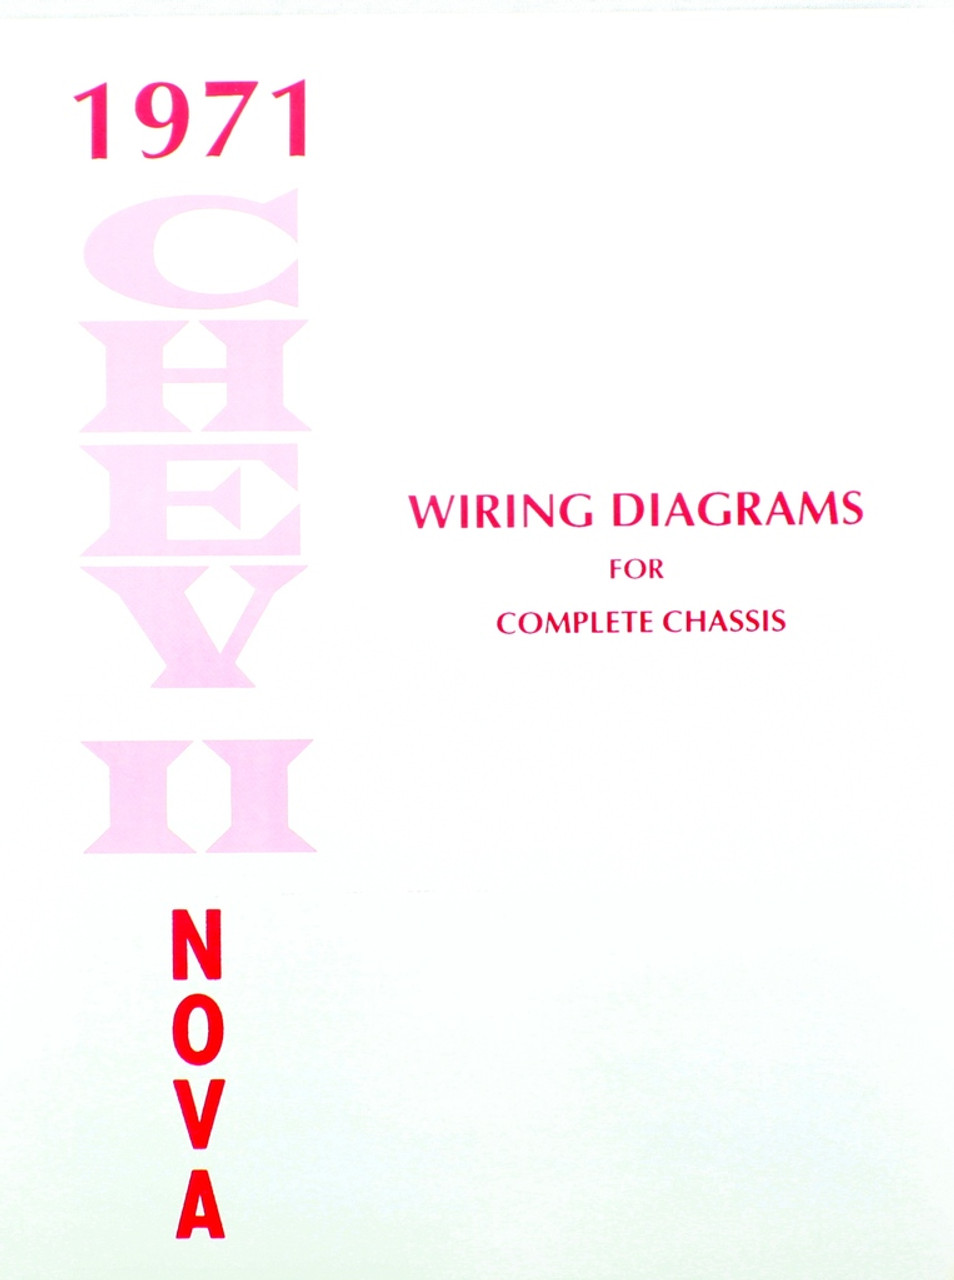 71 1971 CHEVY NOVA ELECTRICAL WIRING DIAGRAM MANUAL - I-5 ...